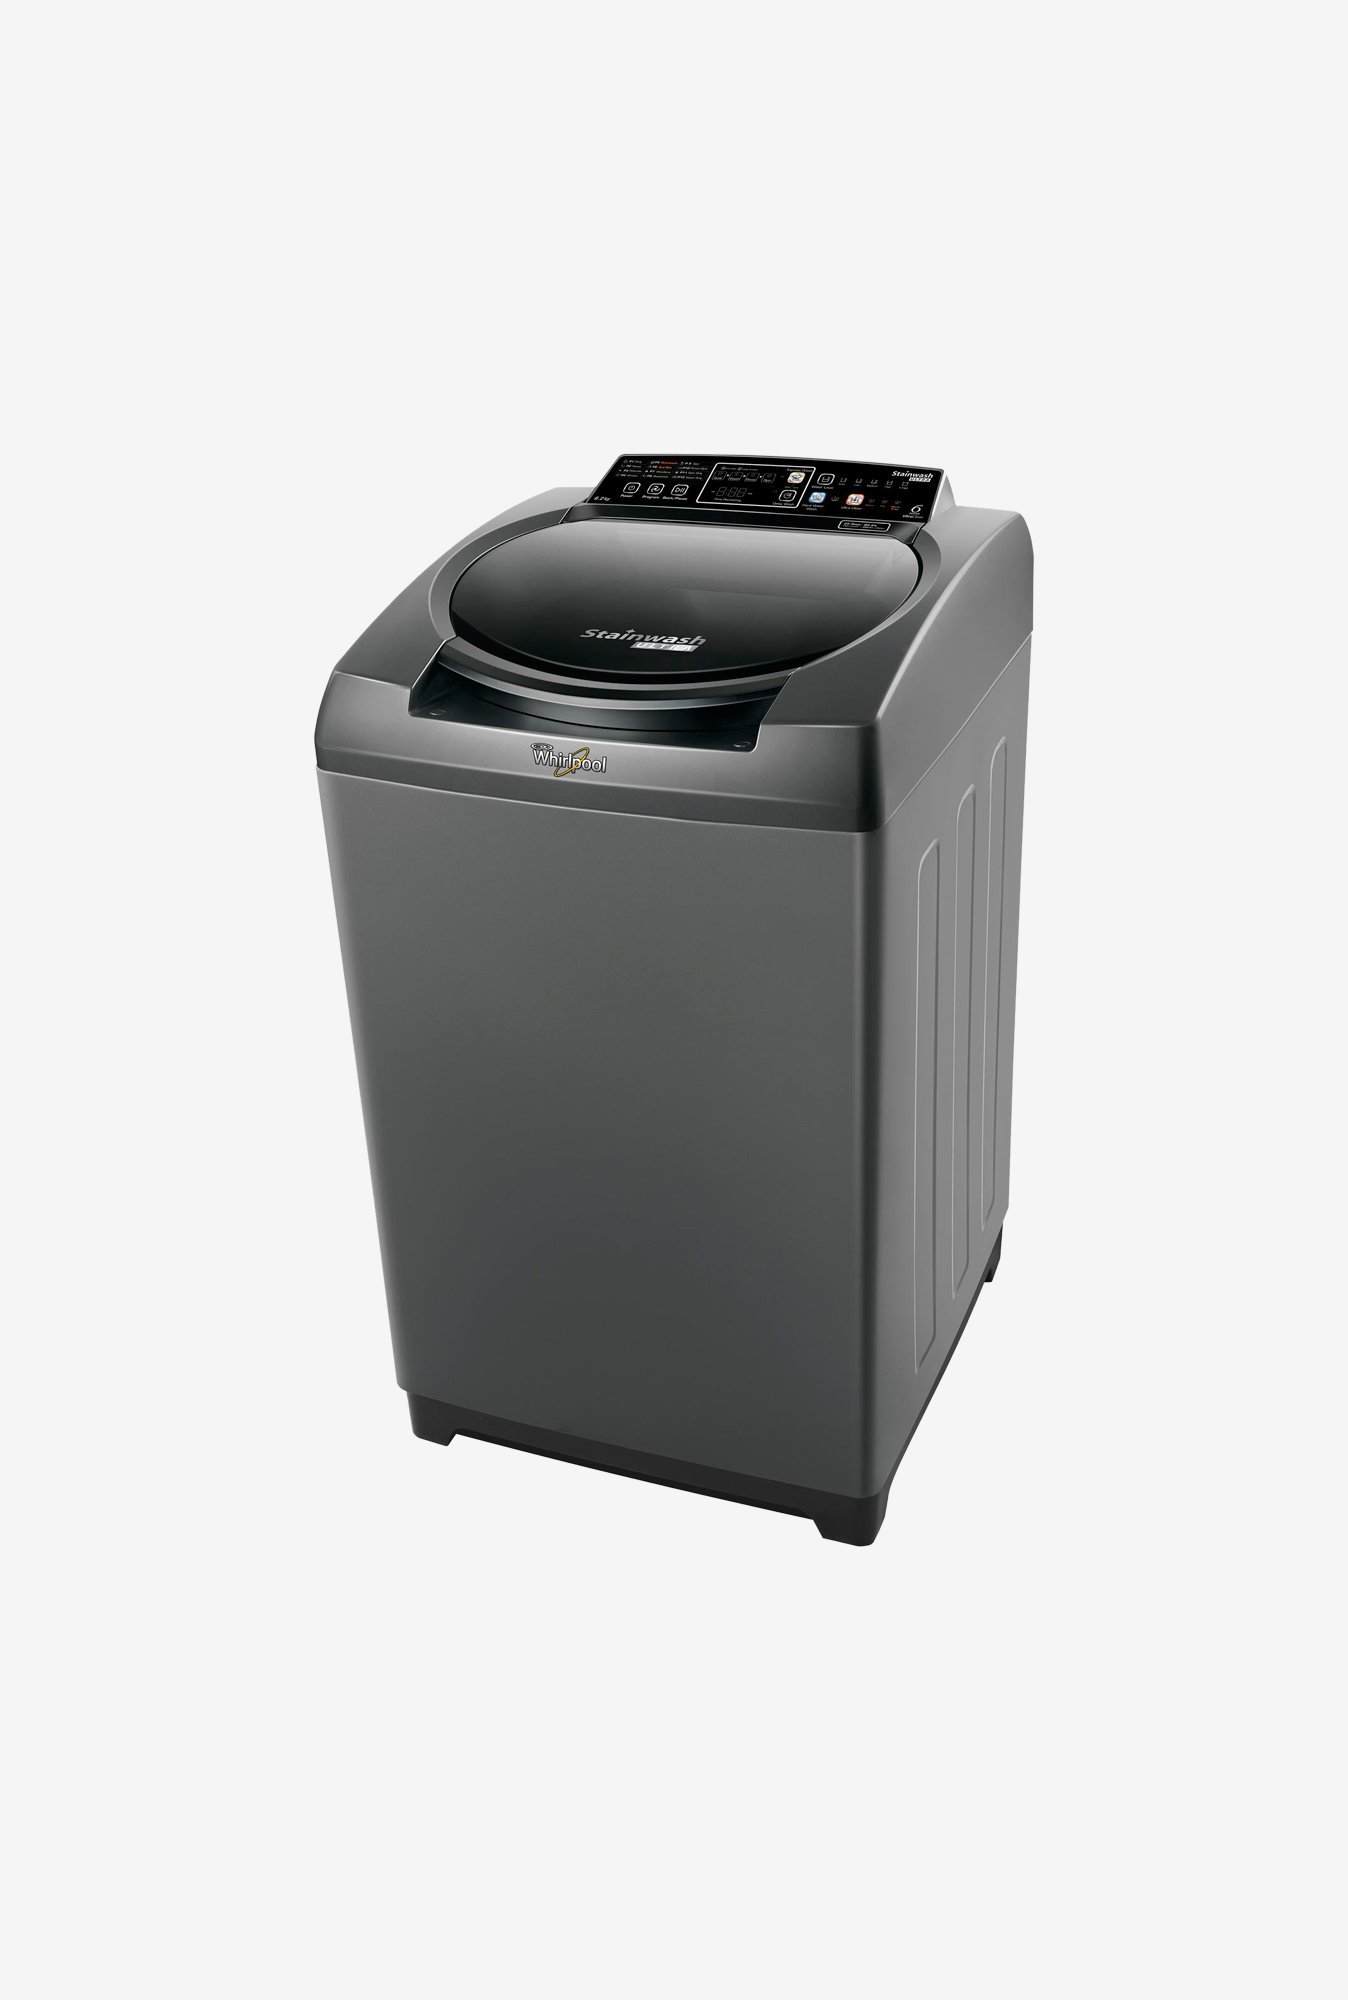 Whirlpool Stainwash Ultra UL62H 6.2 Kg Washing Machine Grey